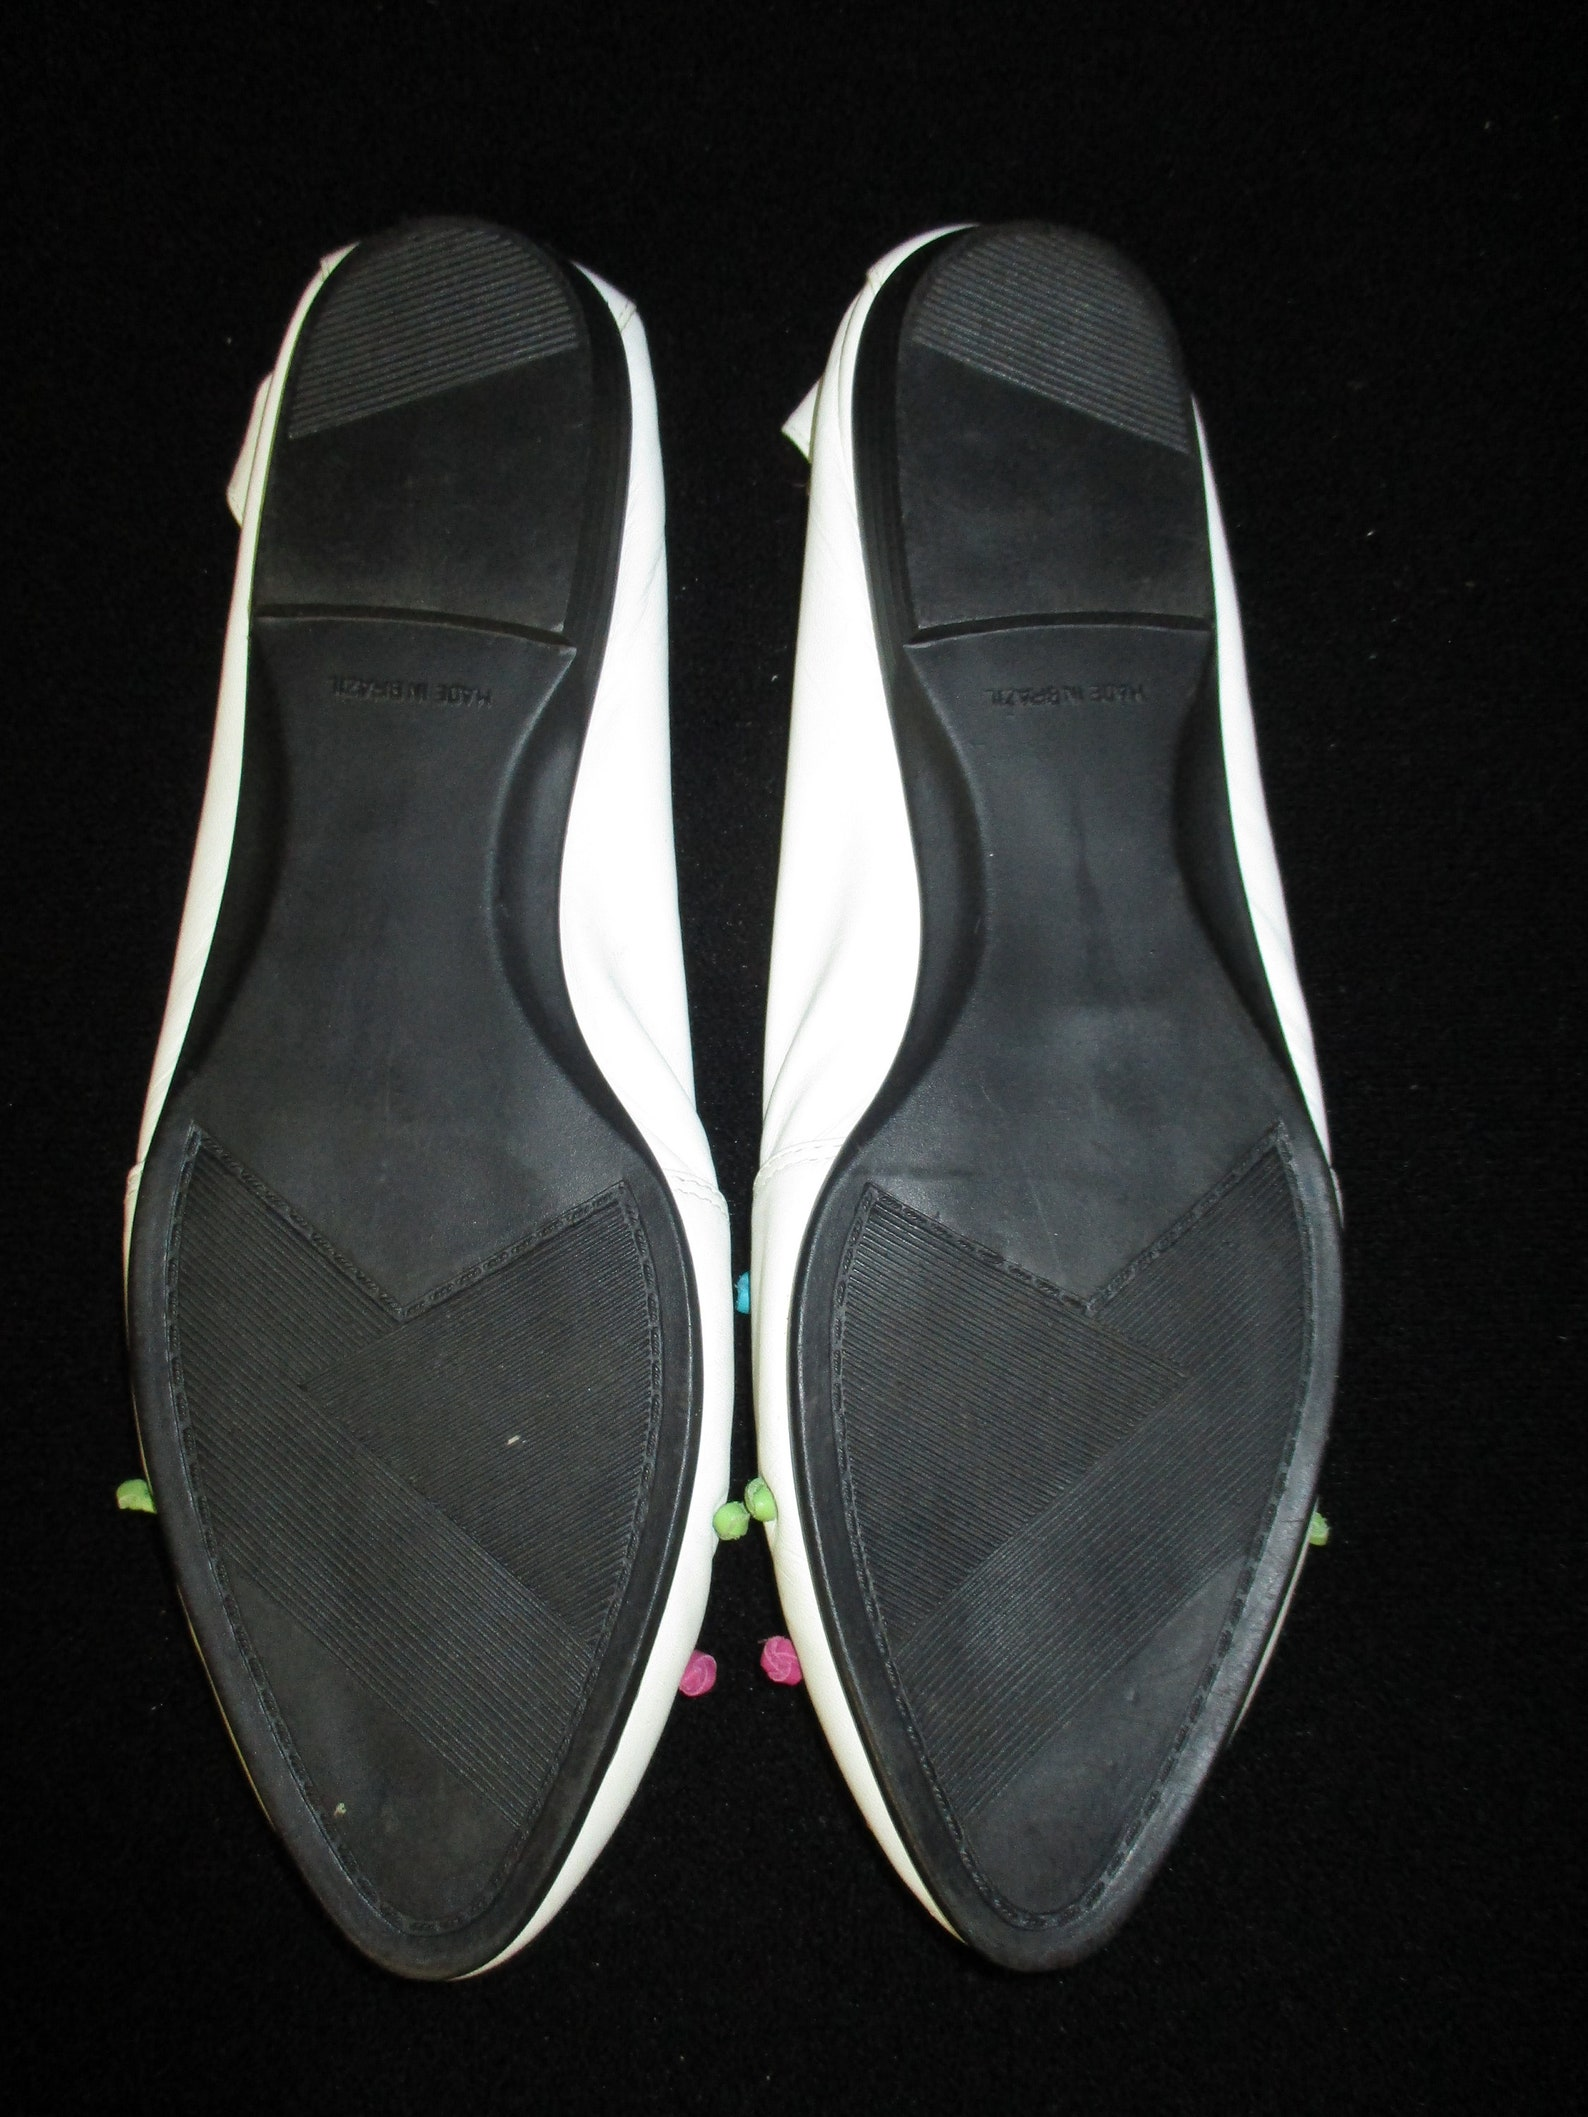 vintage mainframe knots white knotted leather ballet flats shoes size 8.5 made in brazil